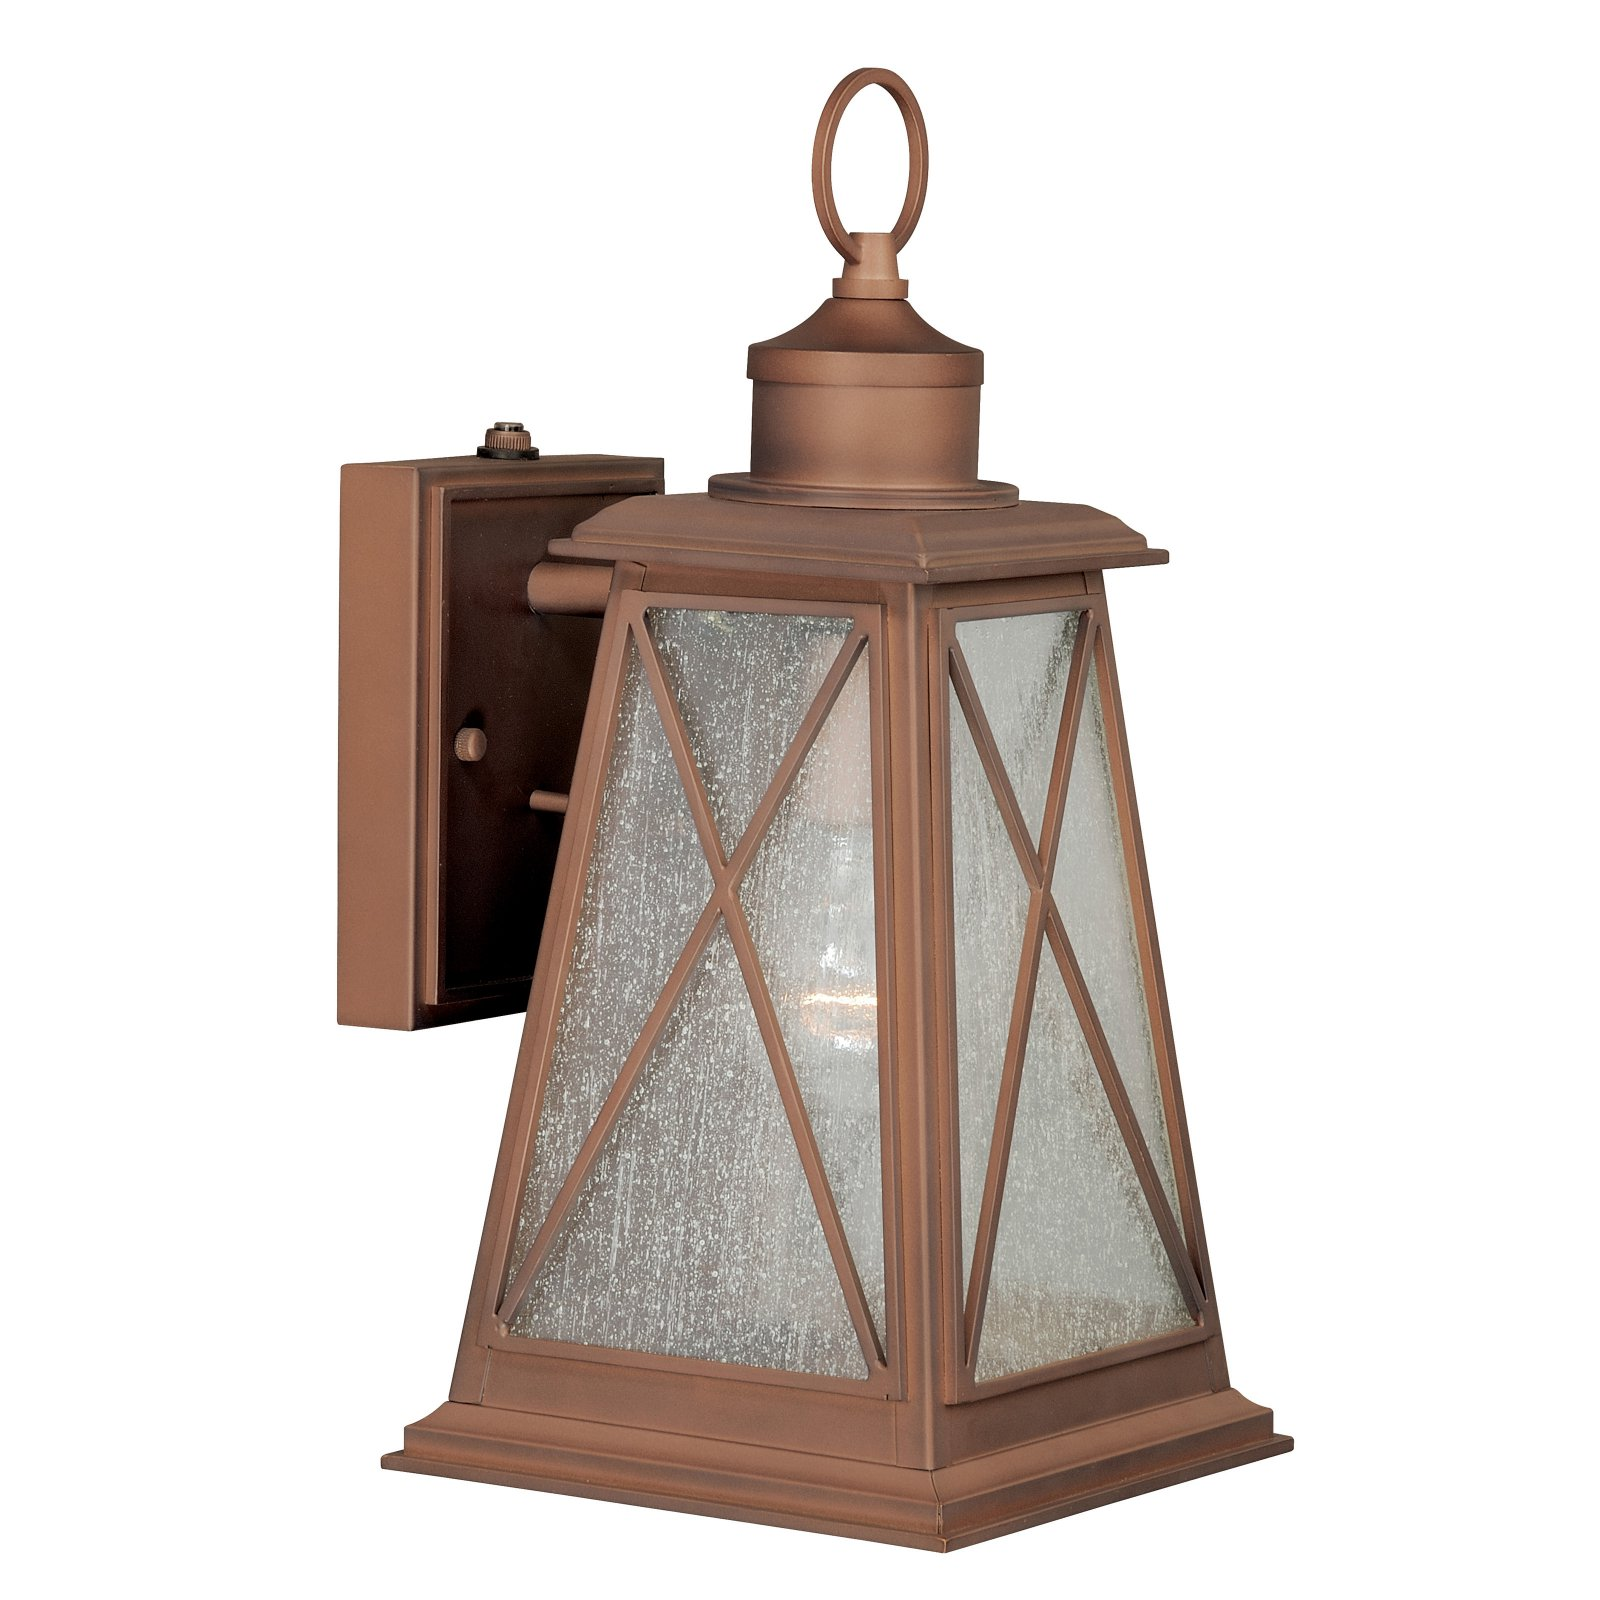 Vaxcel Mackinac T0062/63 Outdoor Wall Sconce